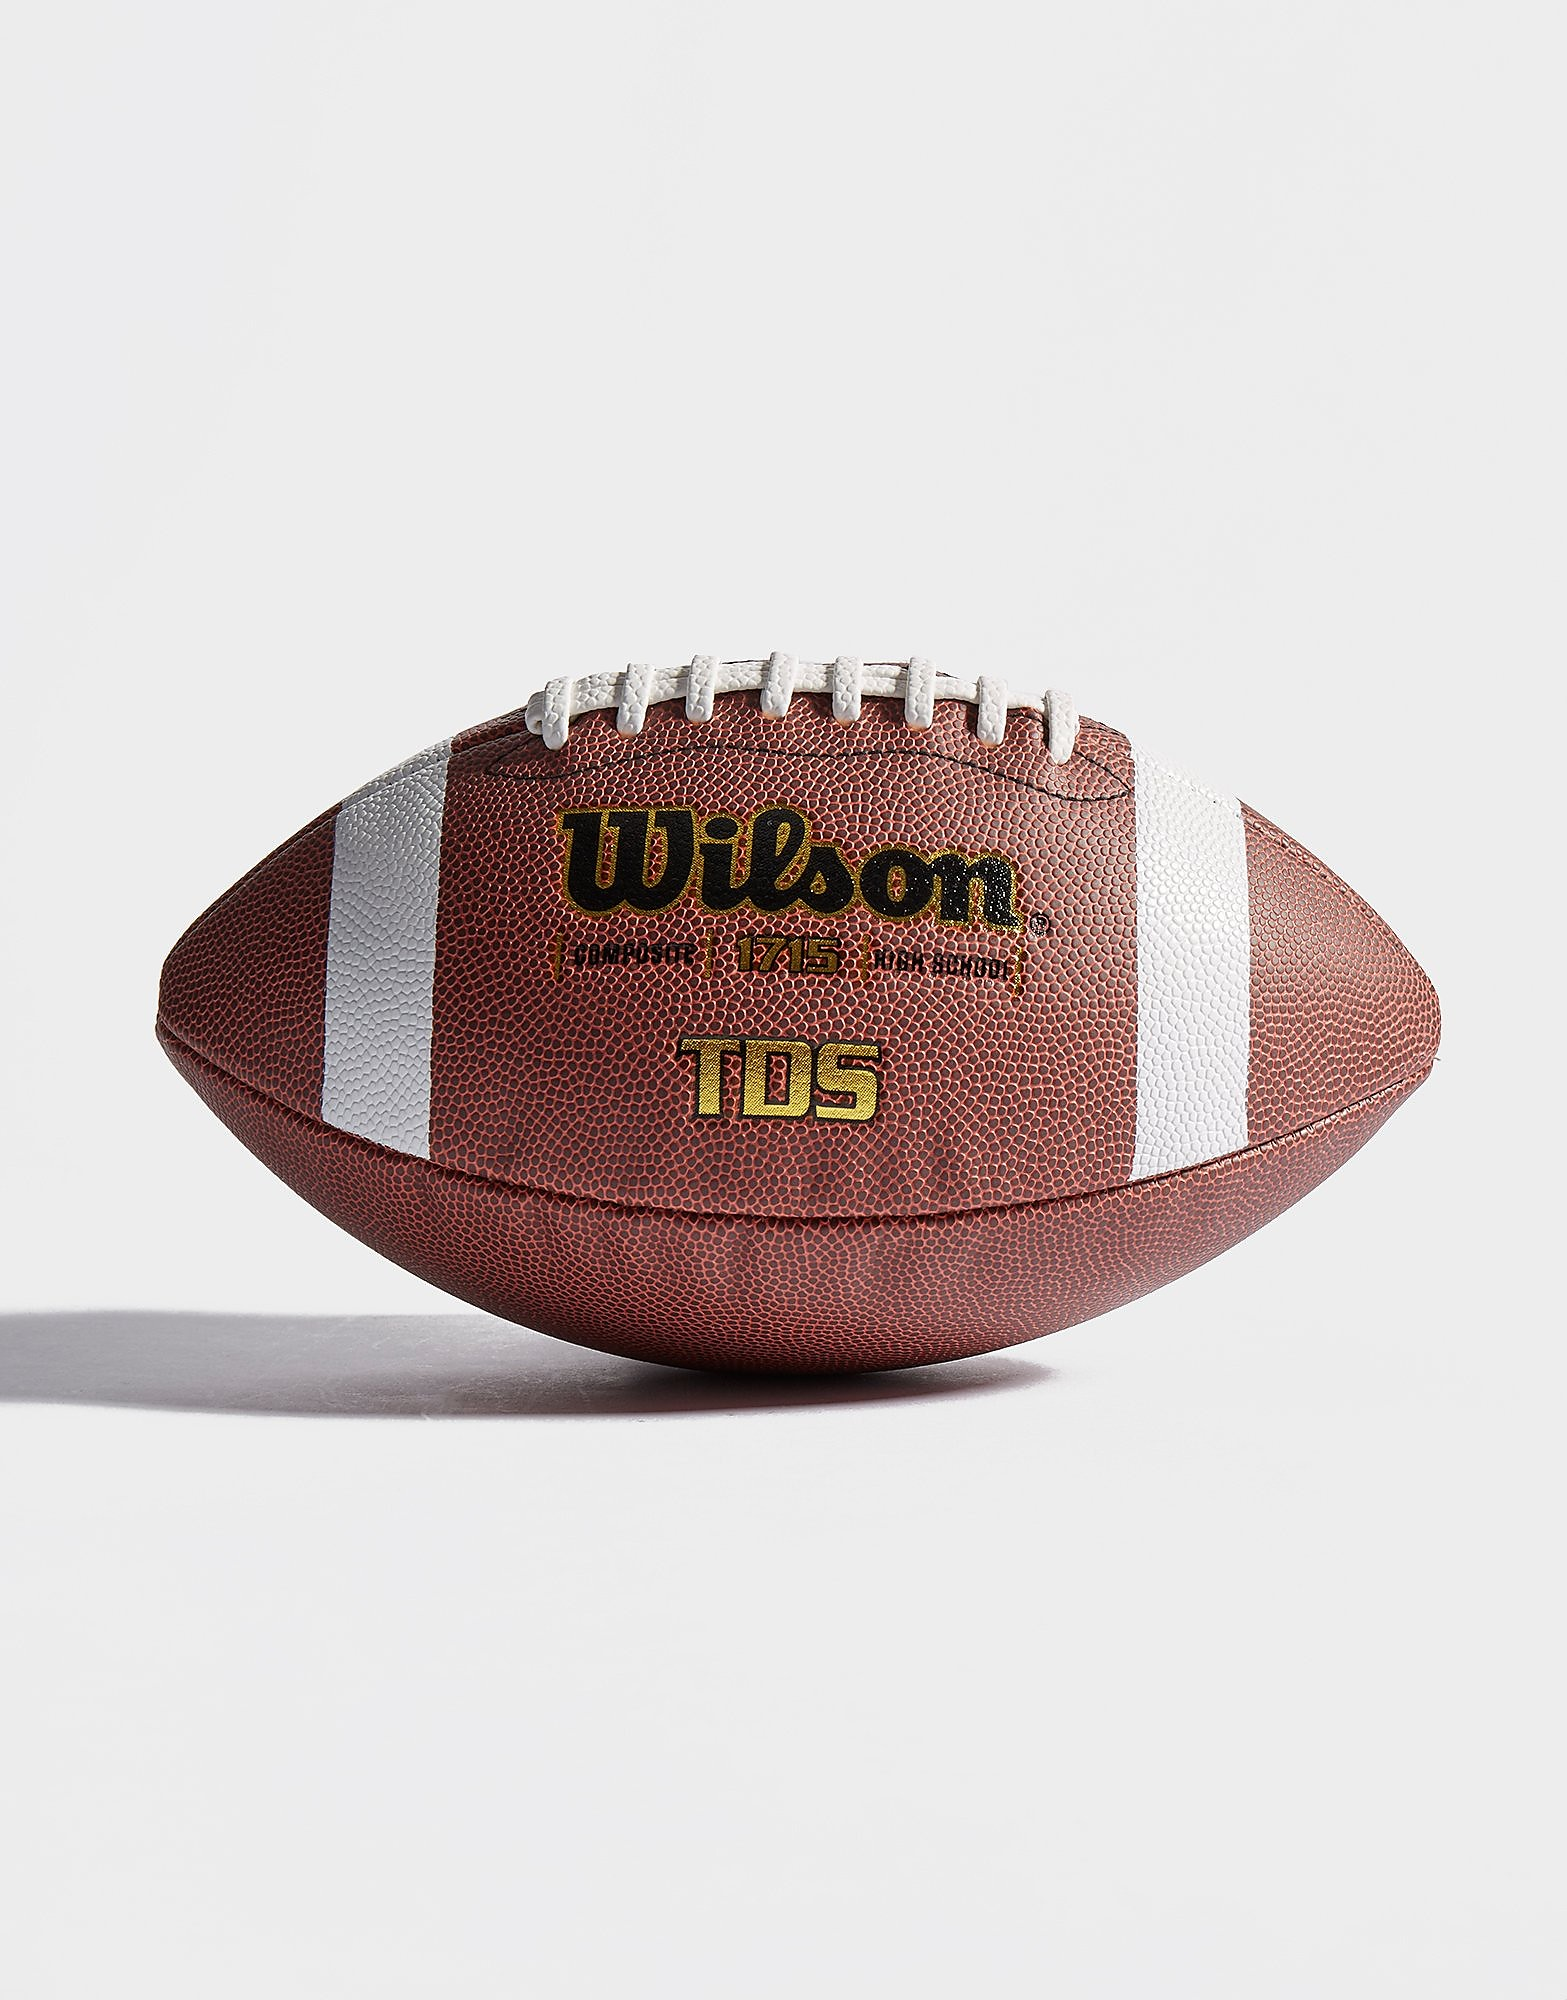 Wilson TDS Composite American Football